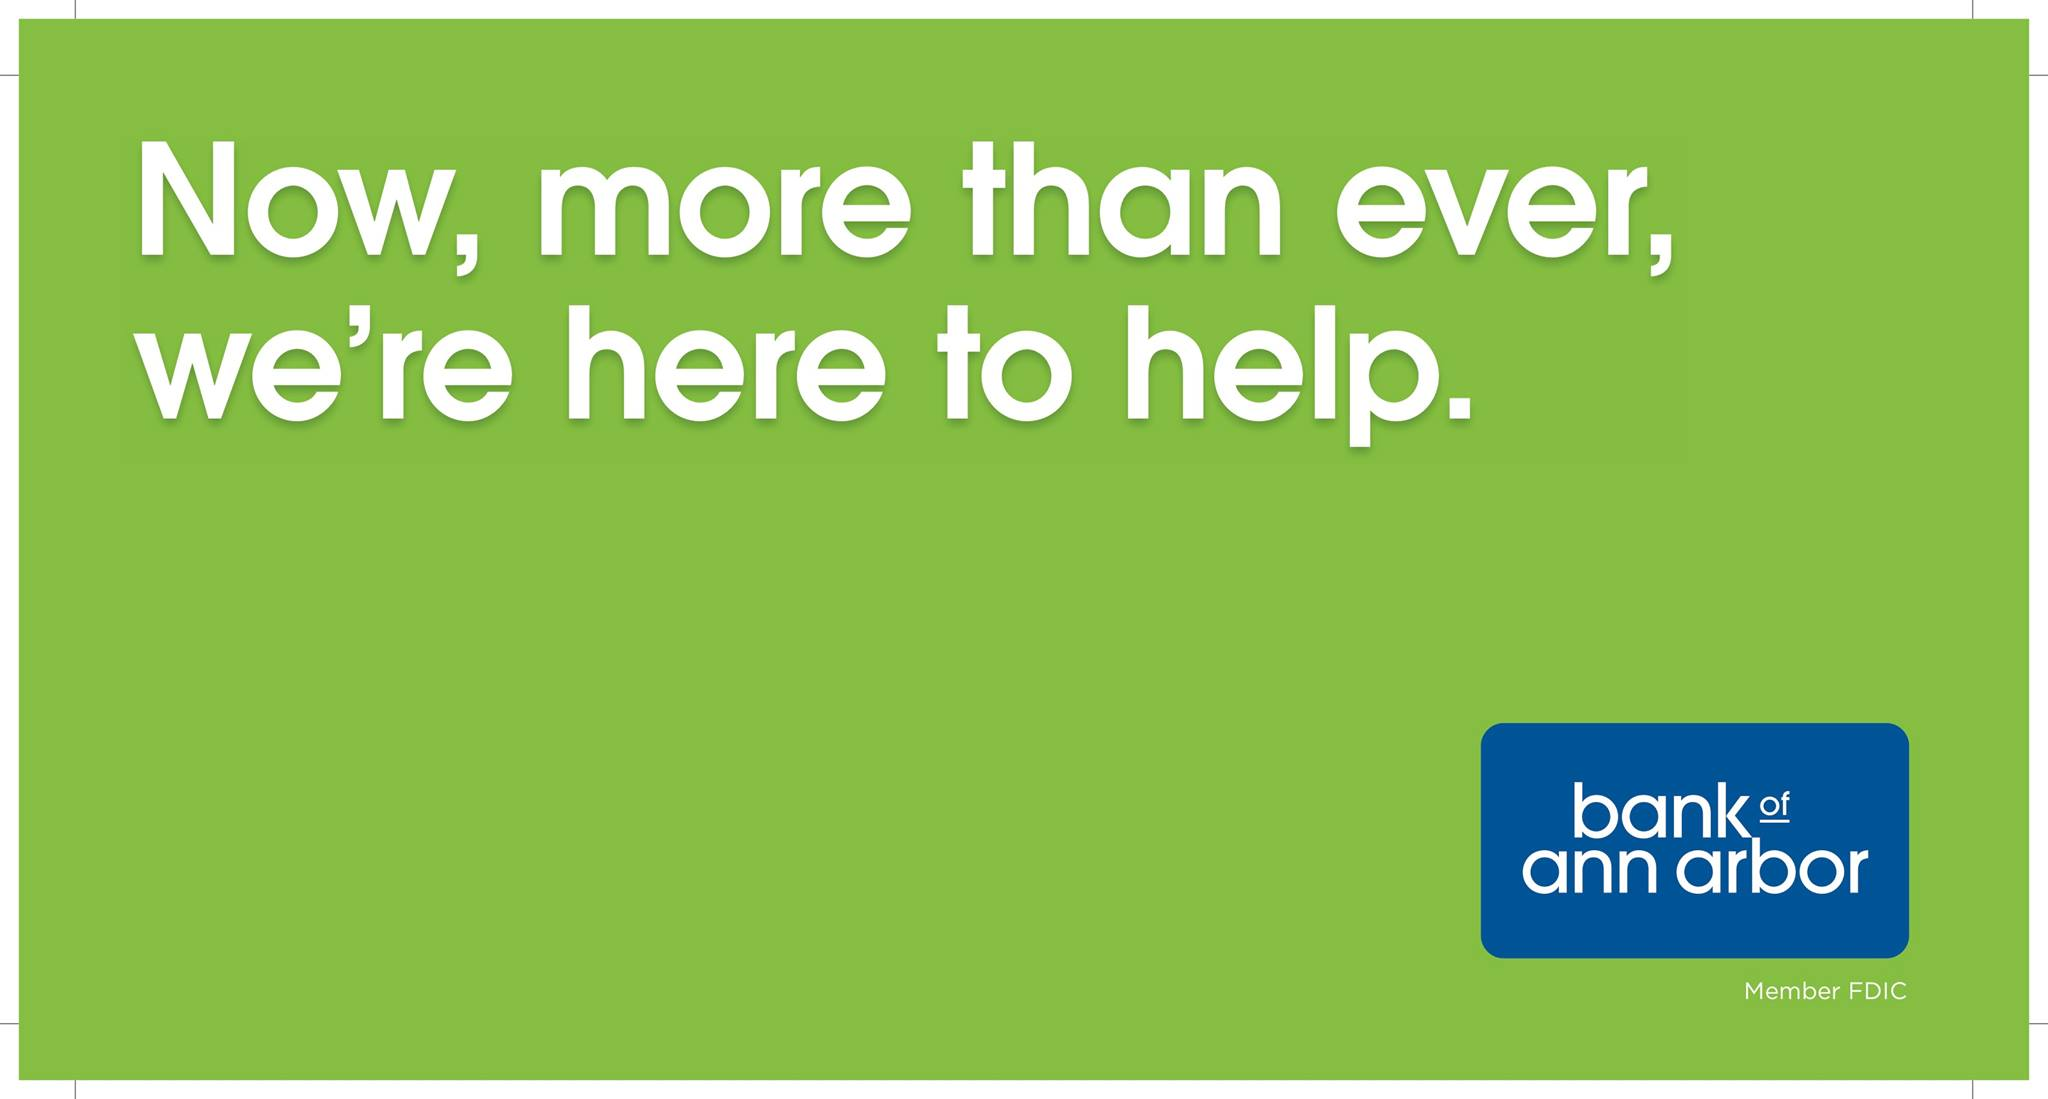 Now, more than ever, we're here to help.